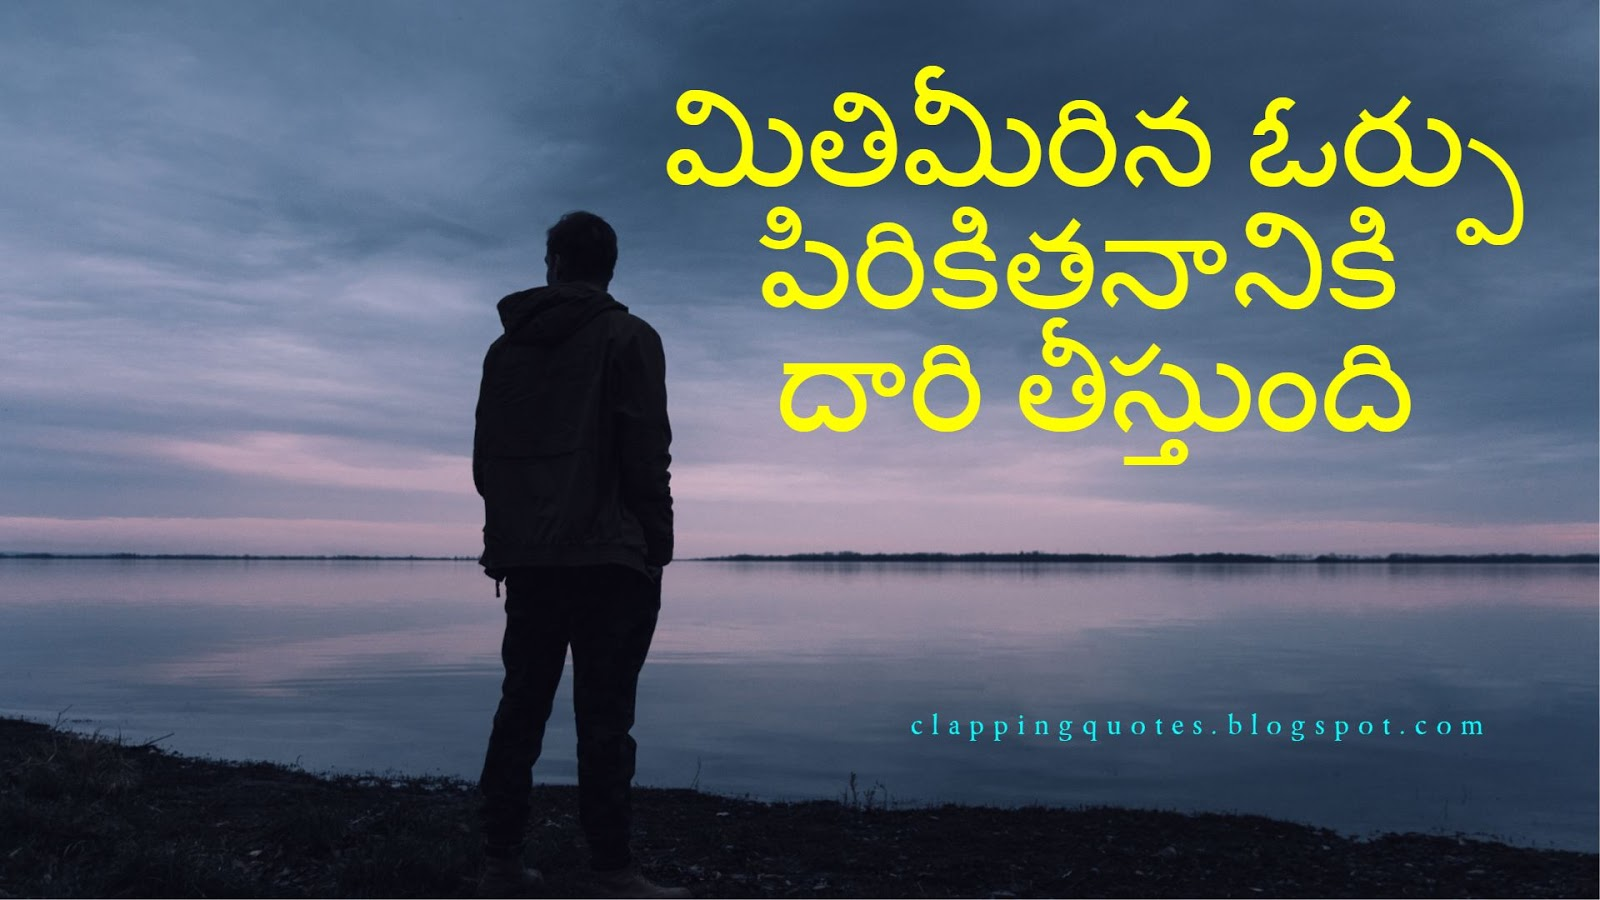 Patience Quote In Telugu - CLAPPING QUOTES